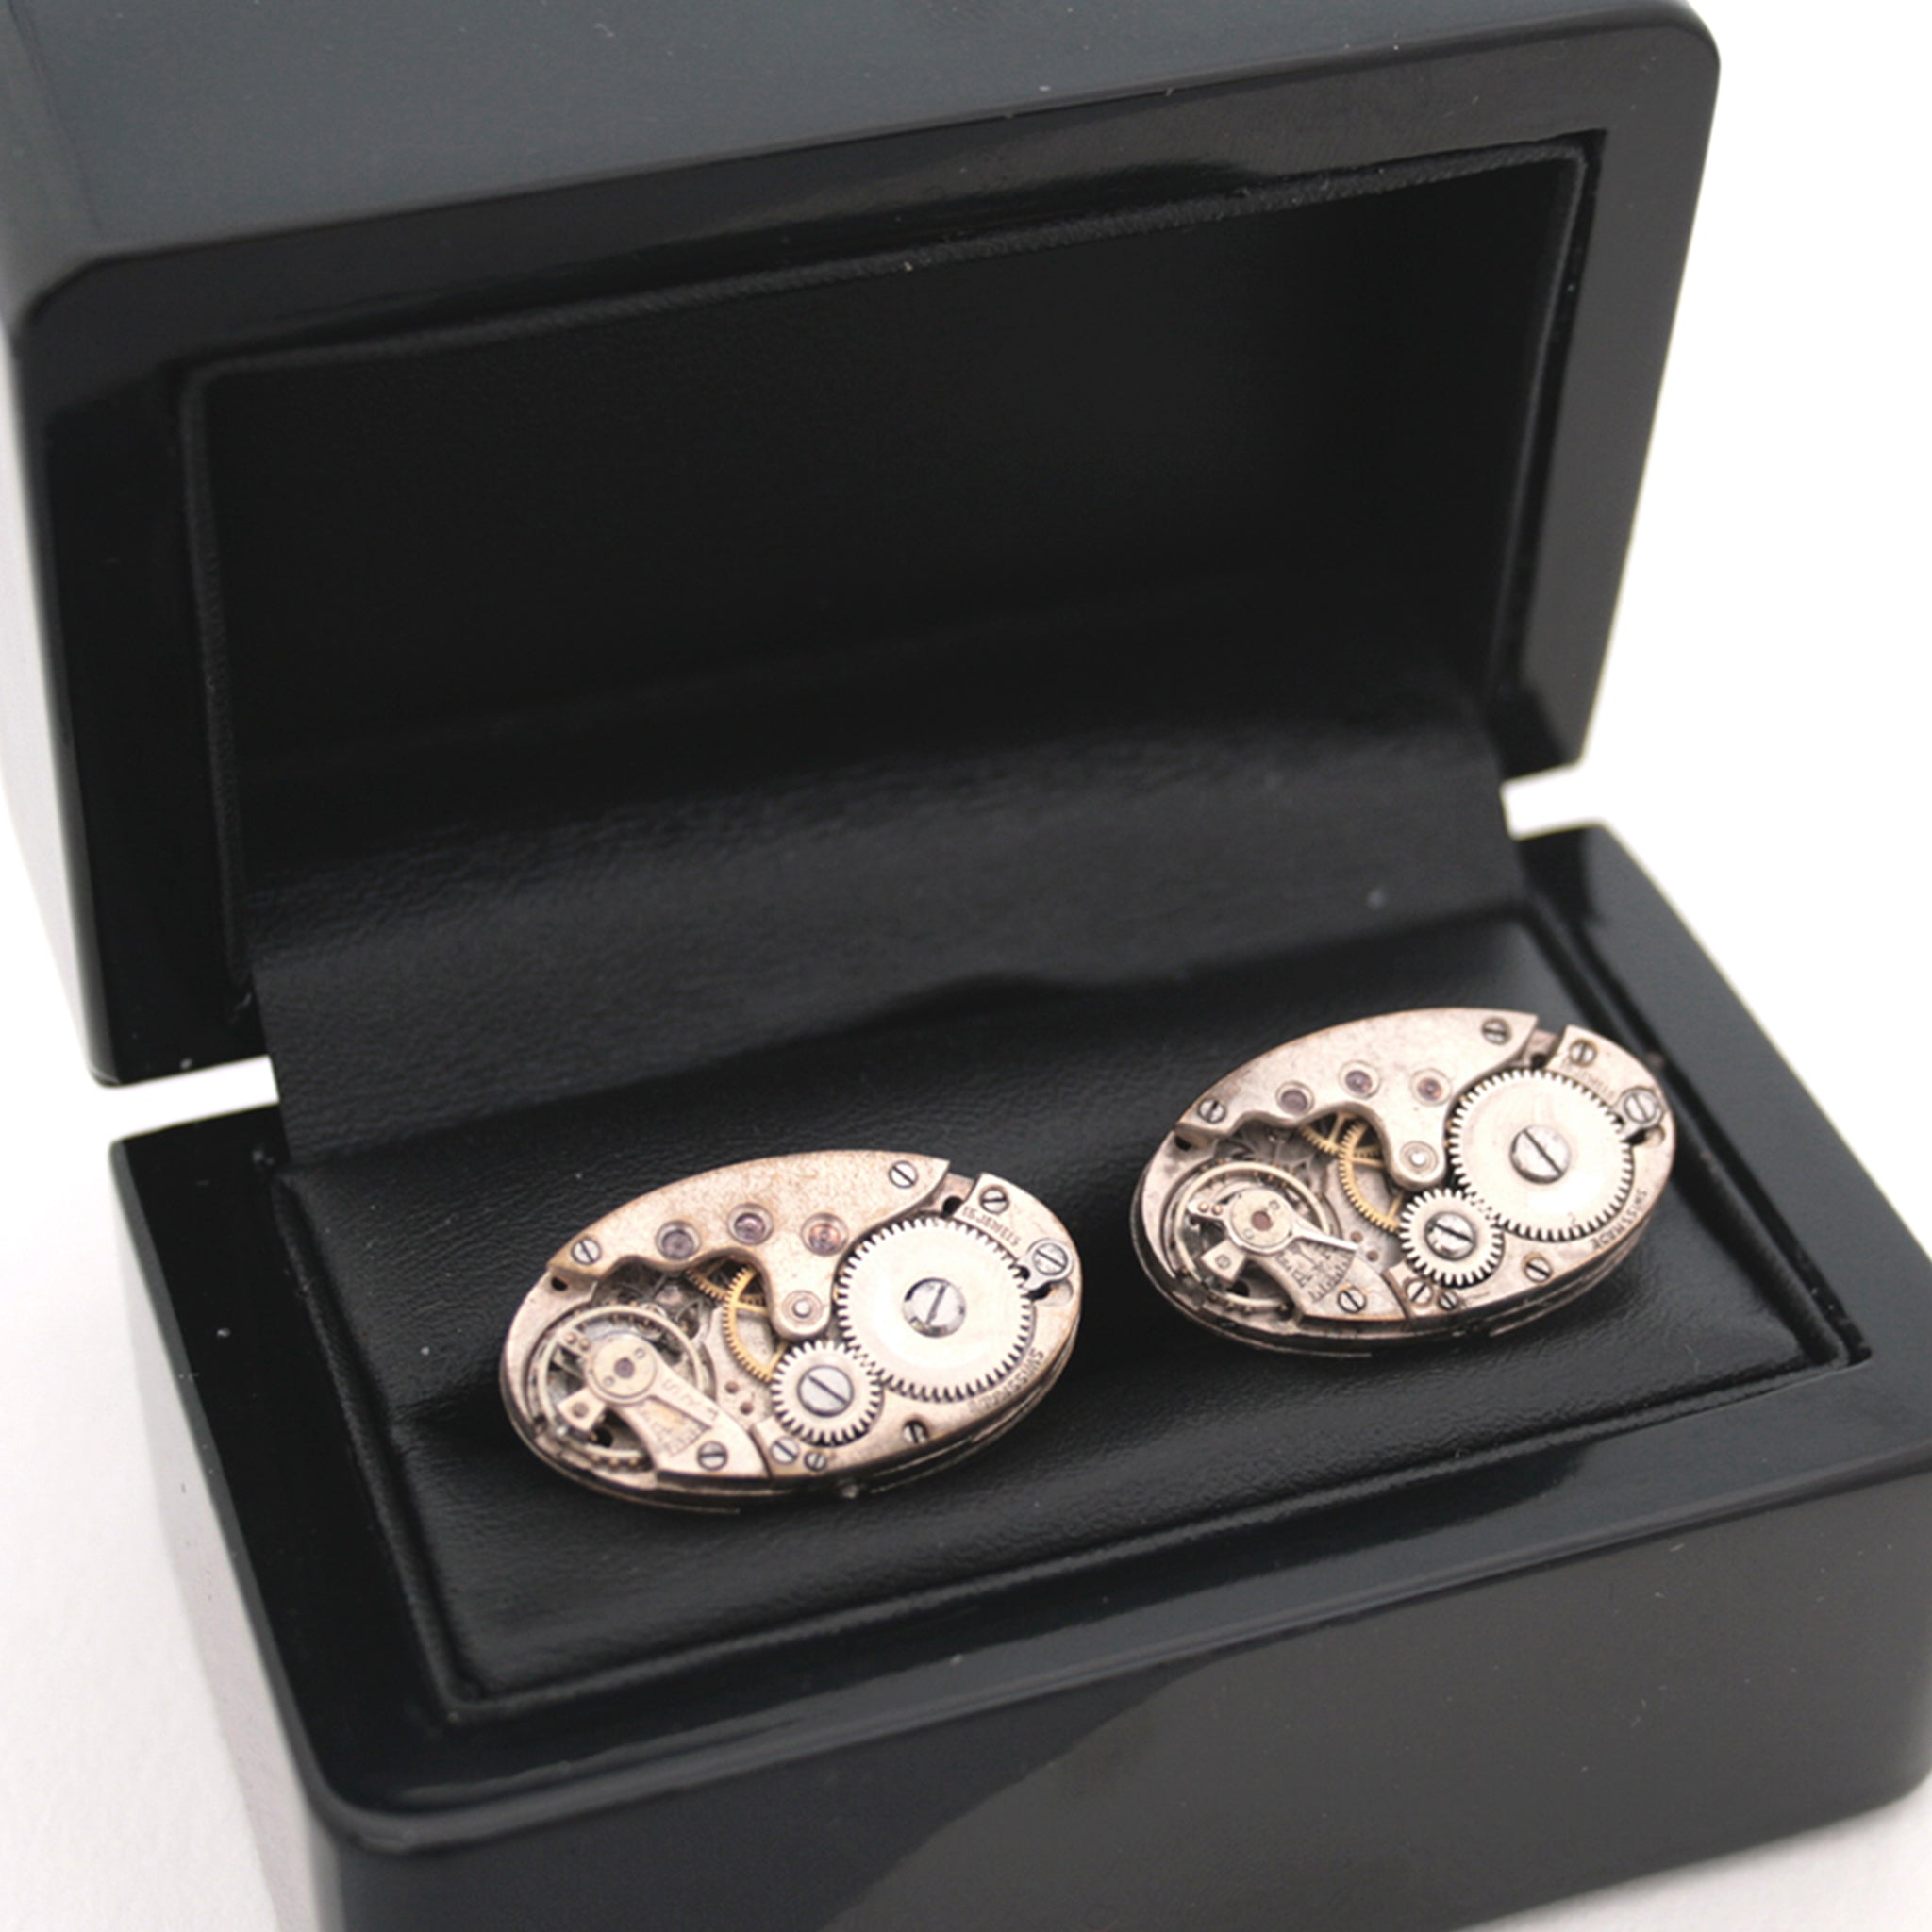 Wedding Cufflinks in Steampunk Style in ebony box